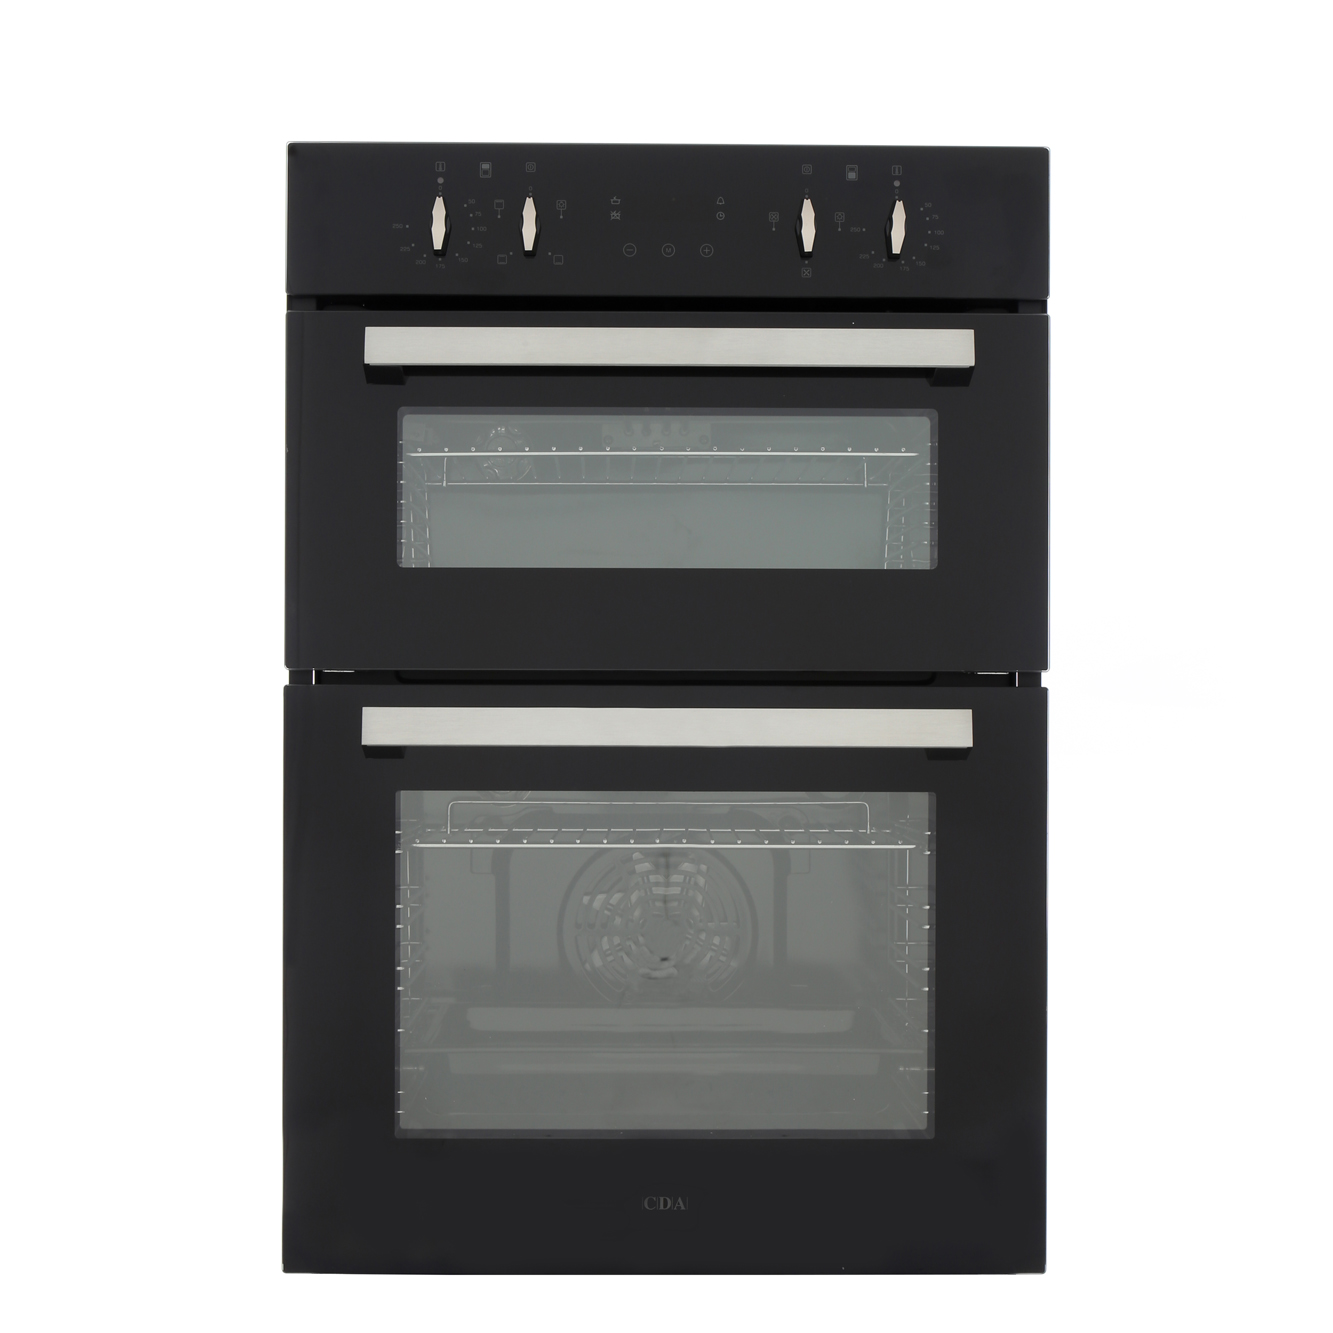 CDA DC940BL Double Built In Electric Oven